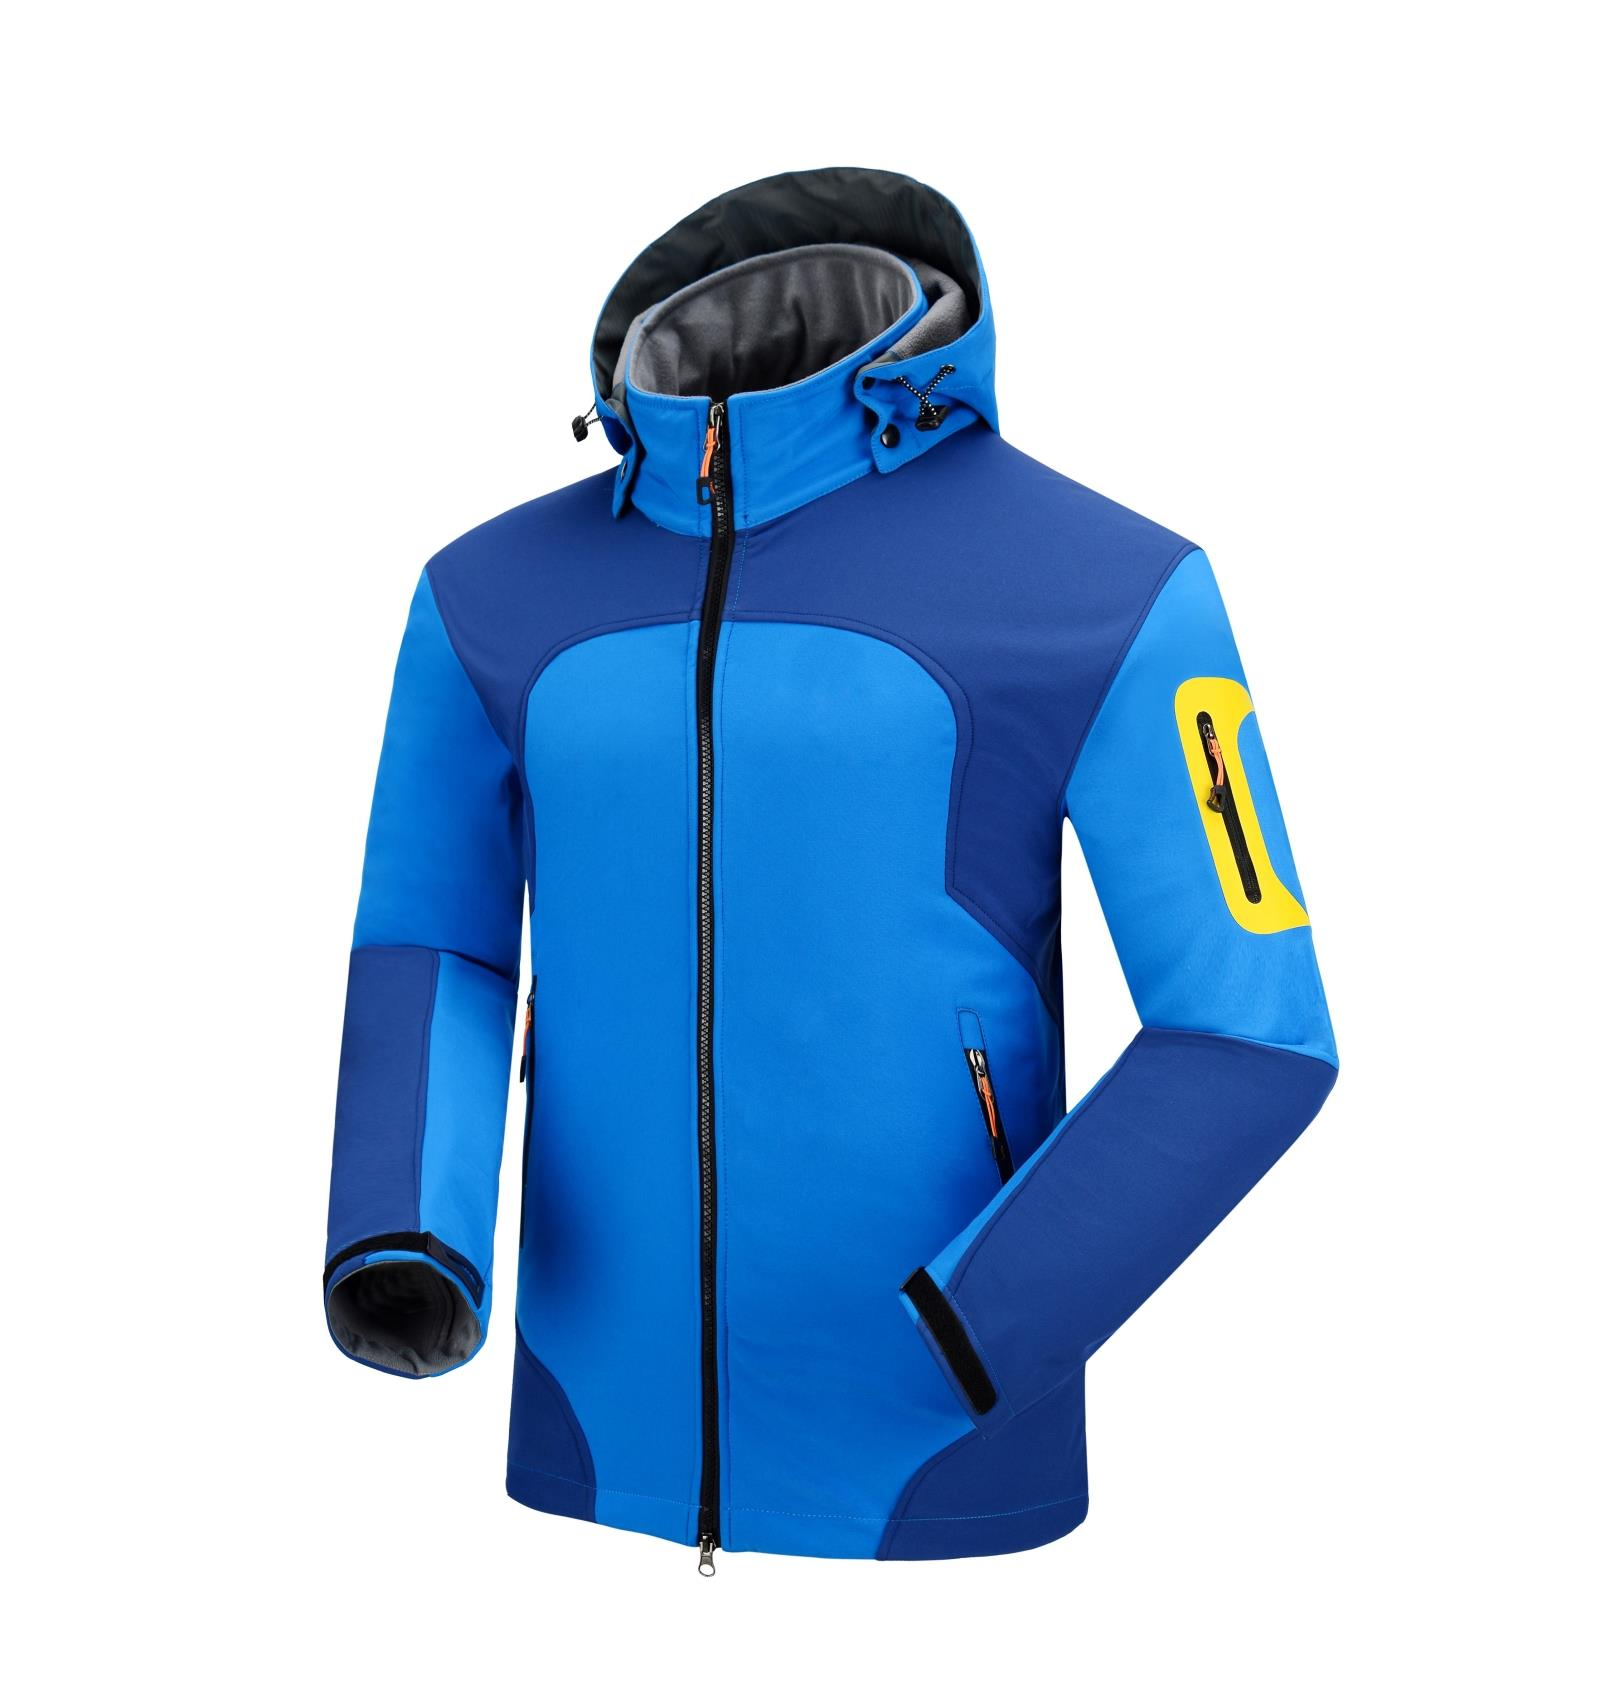 купить 4 colors Softshell Jacket Men Outdoor Hiking Camping Sport Jacket Ropa Senderismo Hombre Chaqueta Soft Shell Thermal clothing по цене 5565.6 рублей